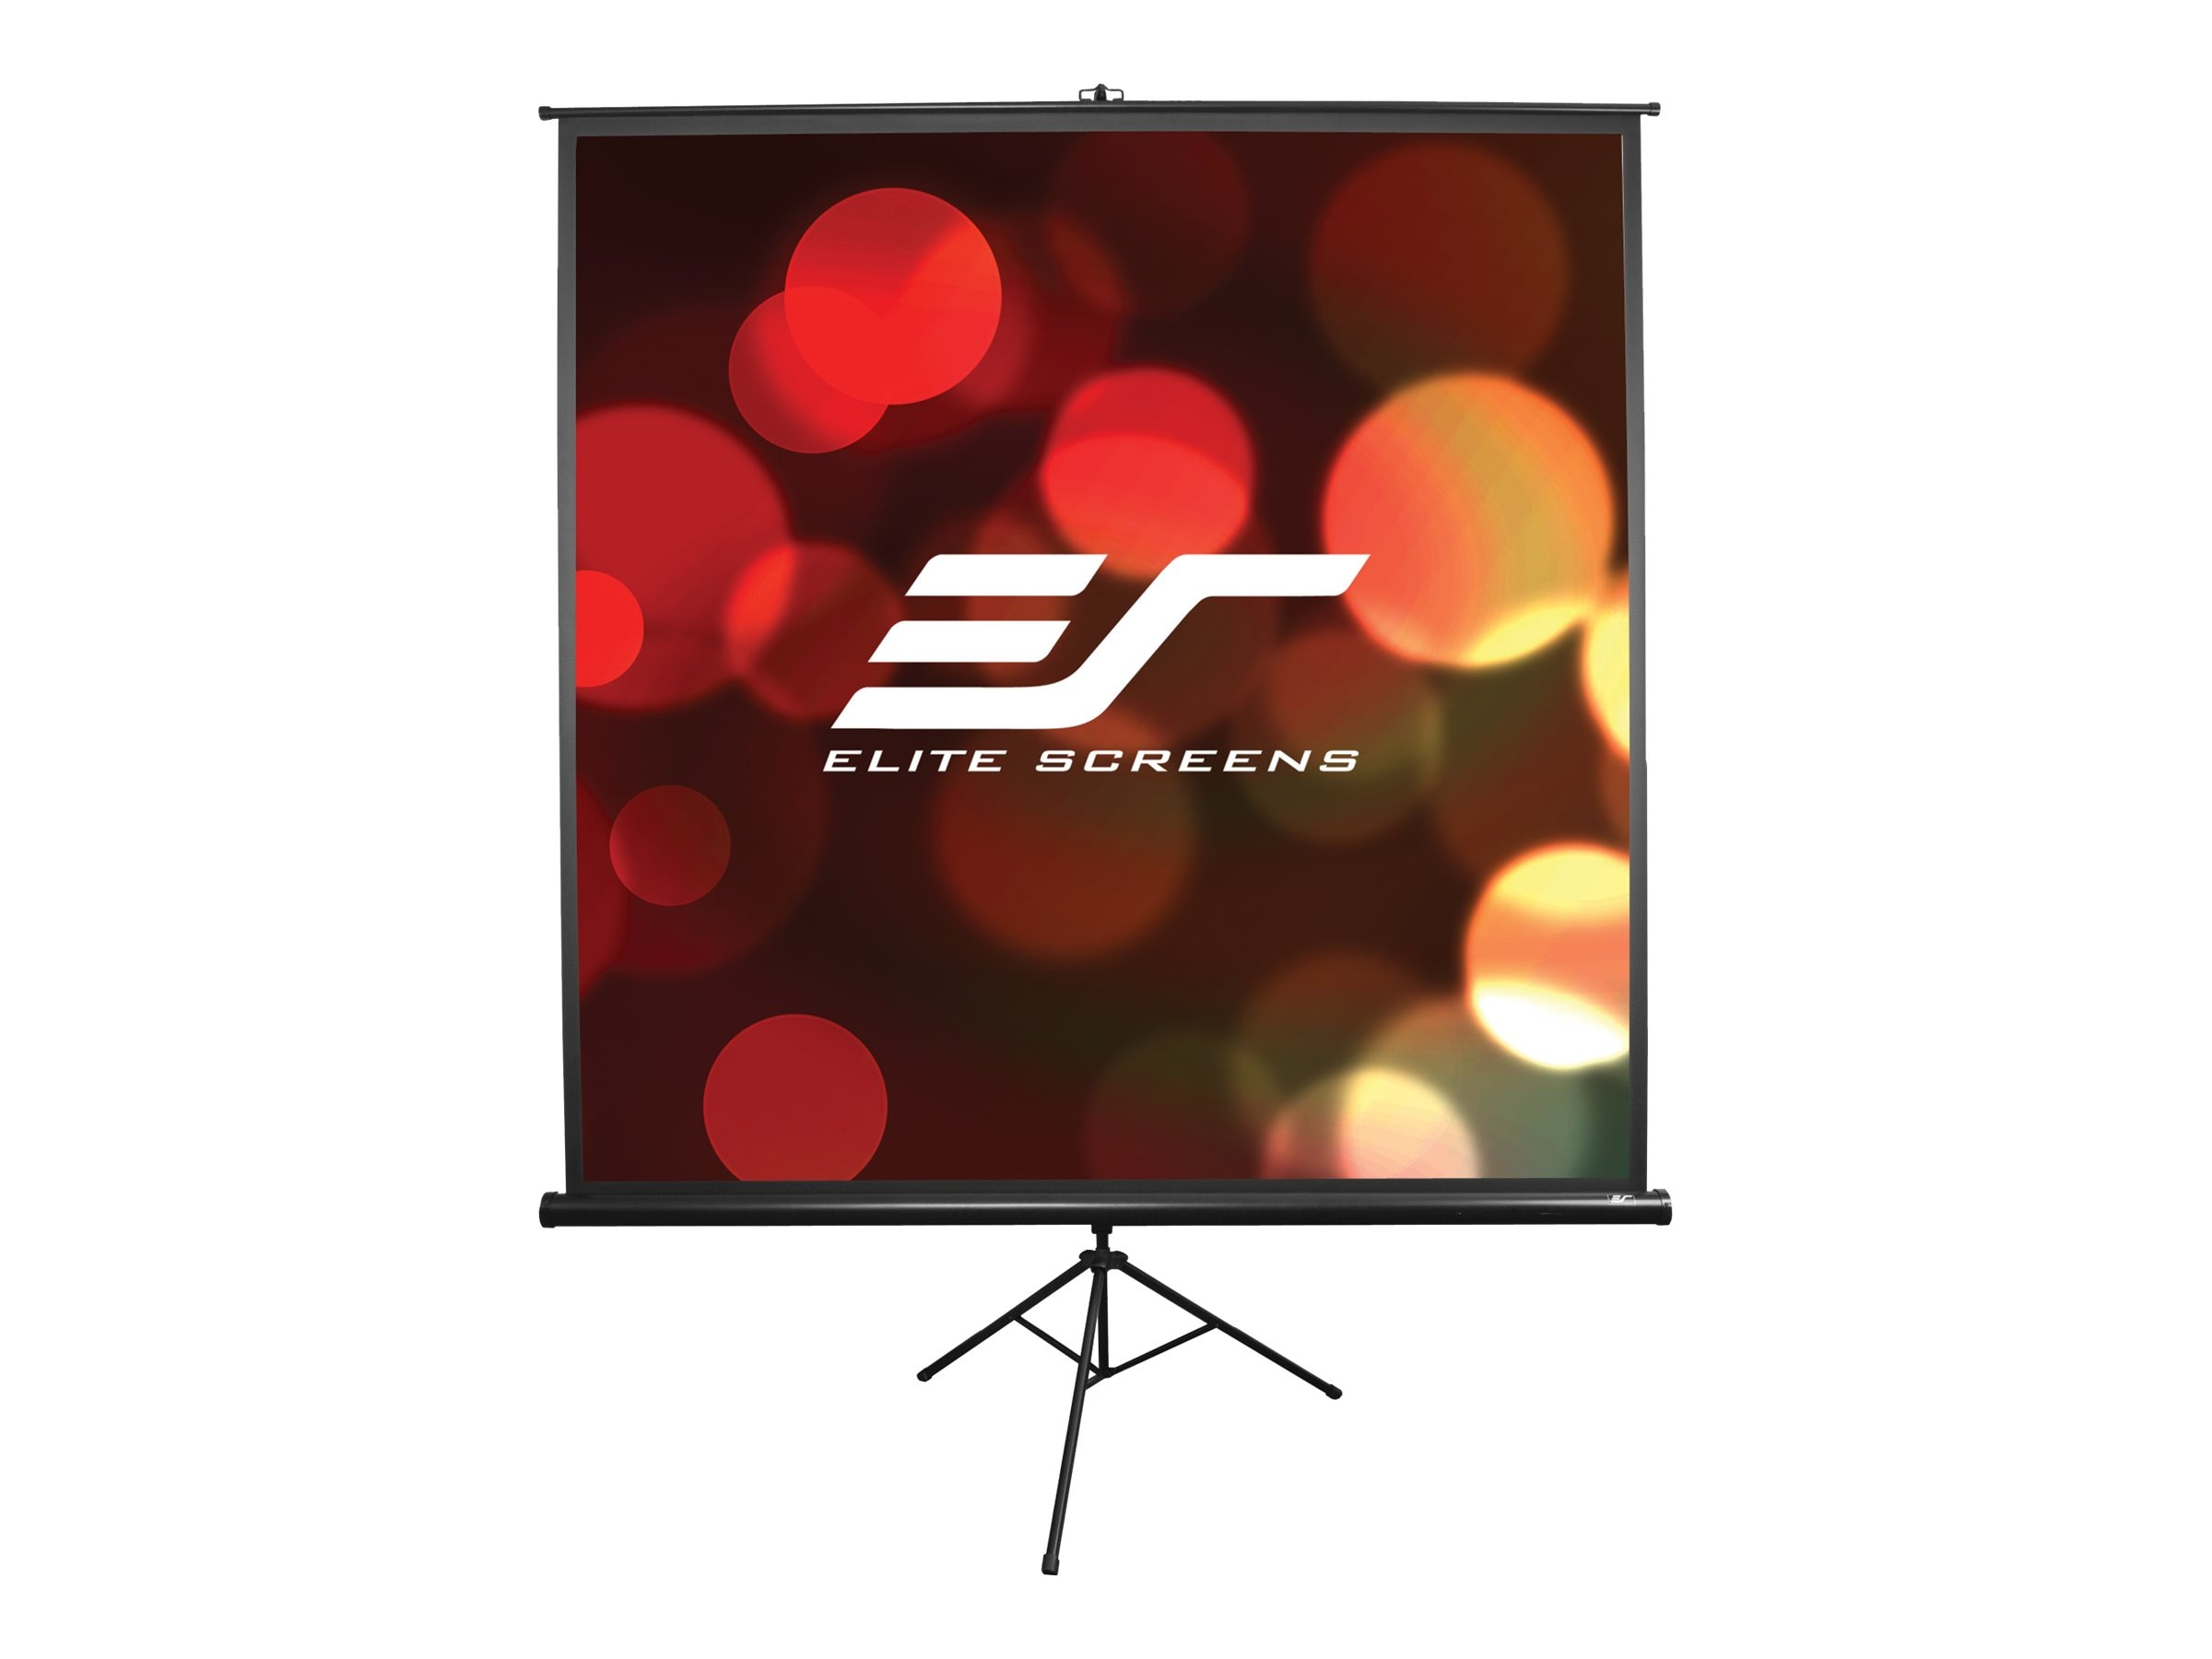 Elite Cinema Tripod Projection Screen, MaxWhite, 16:0, 92in (Free Mount after MIR), T92UWH, 9096387, Projector Screens